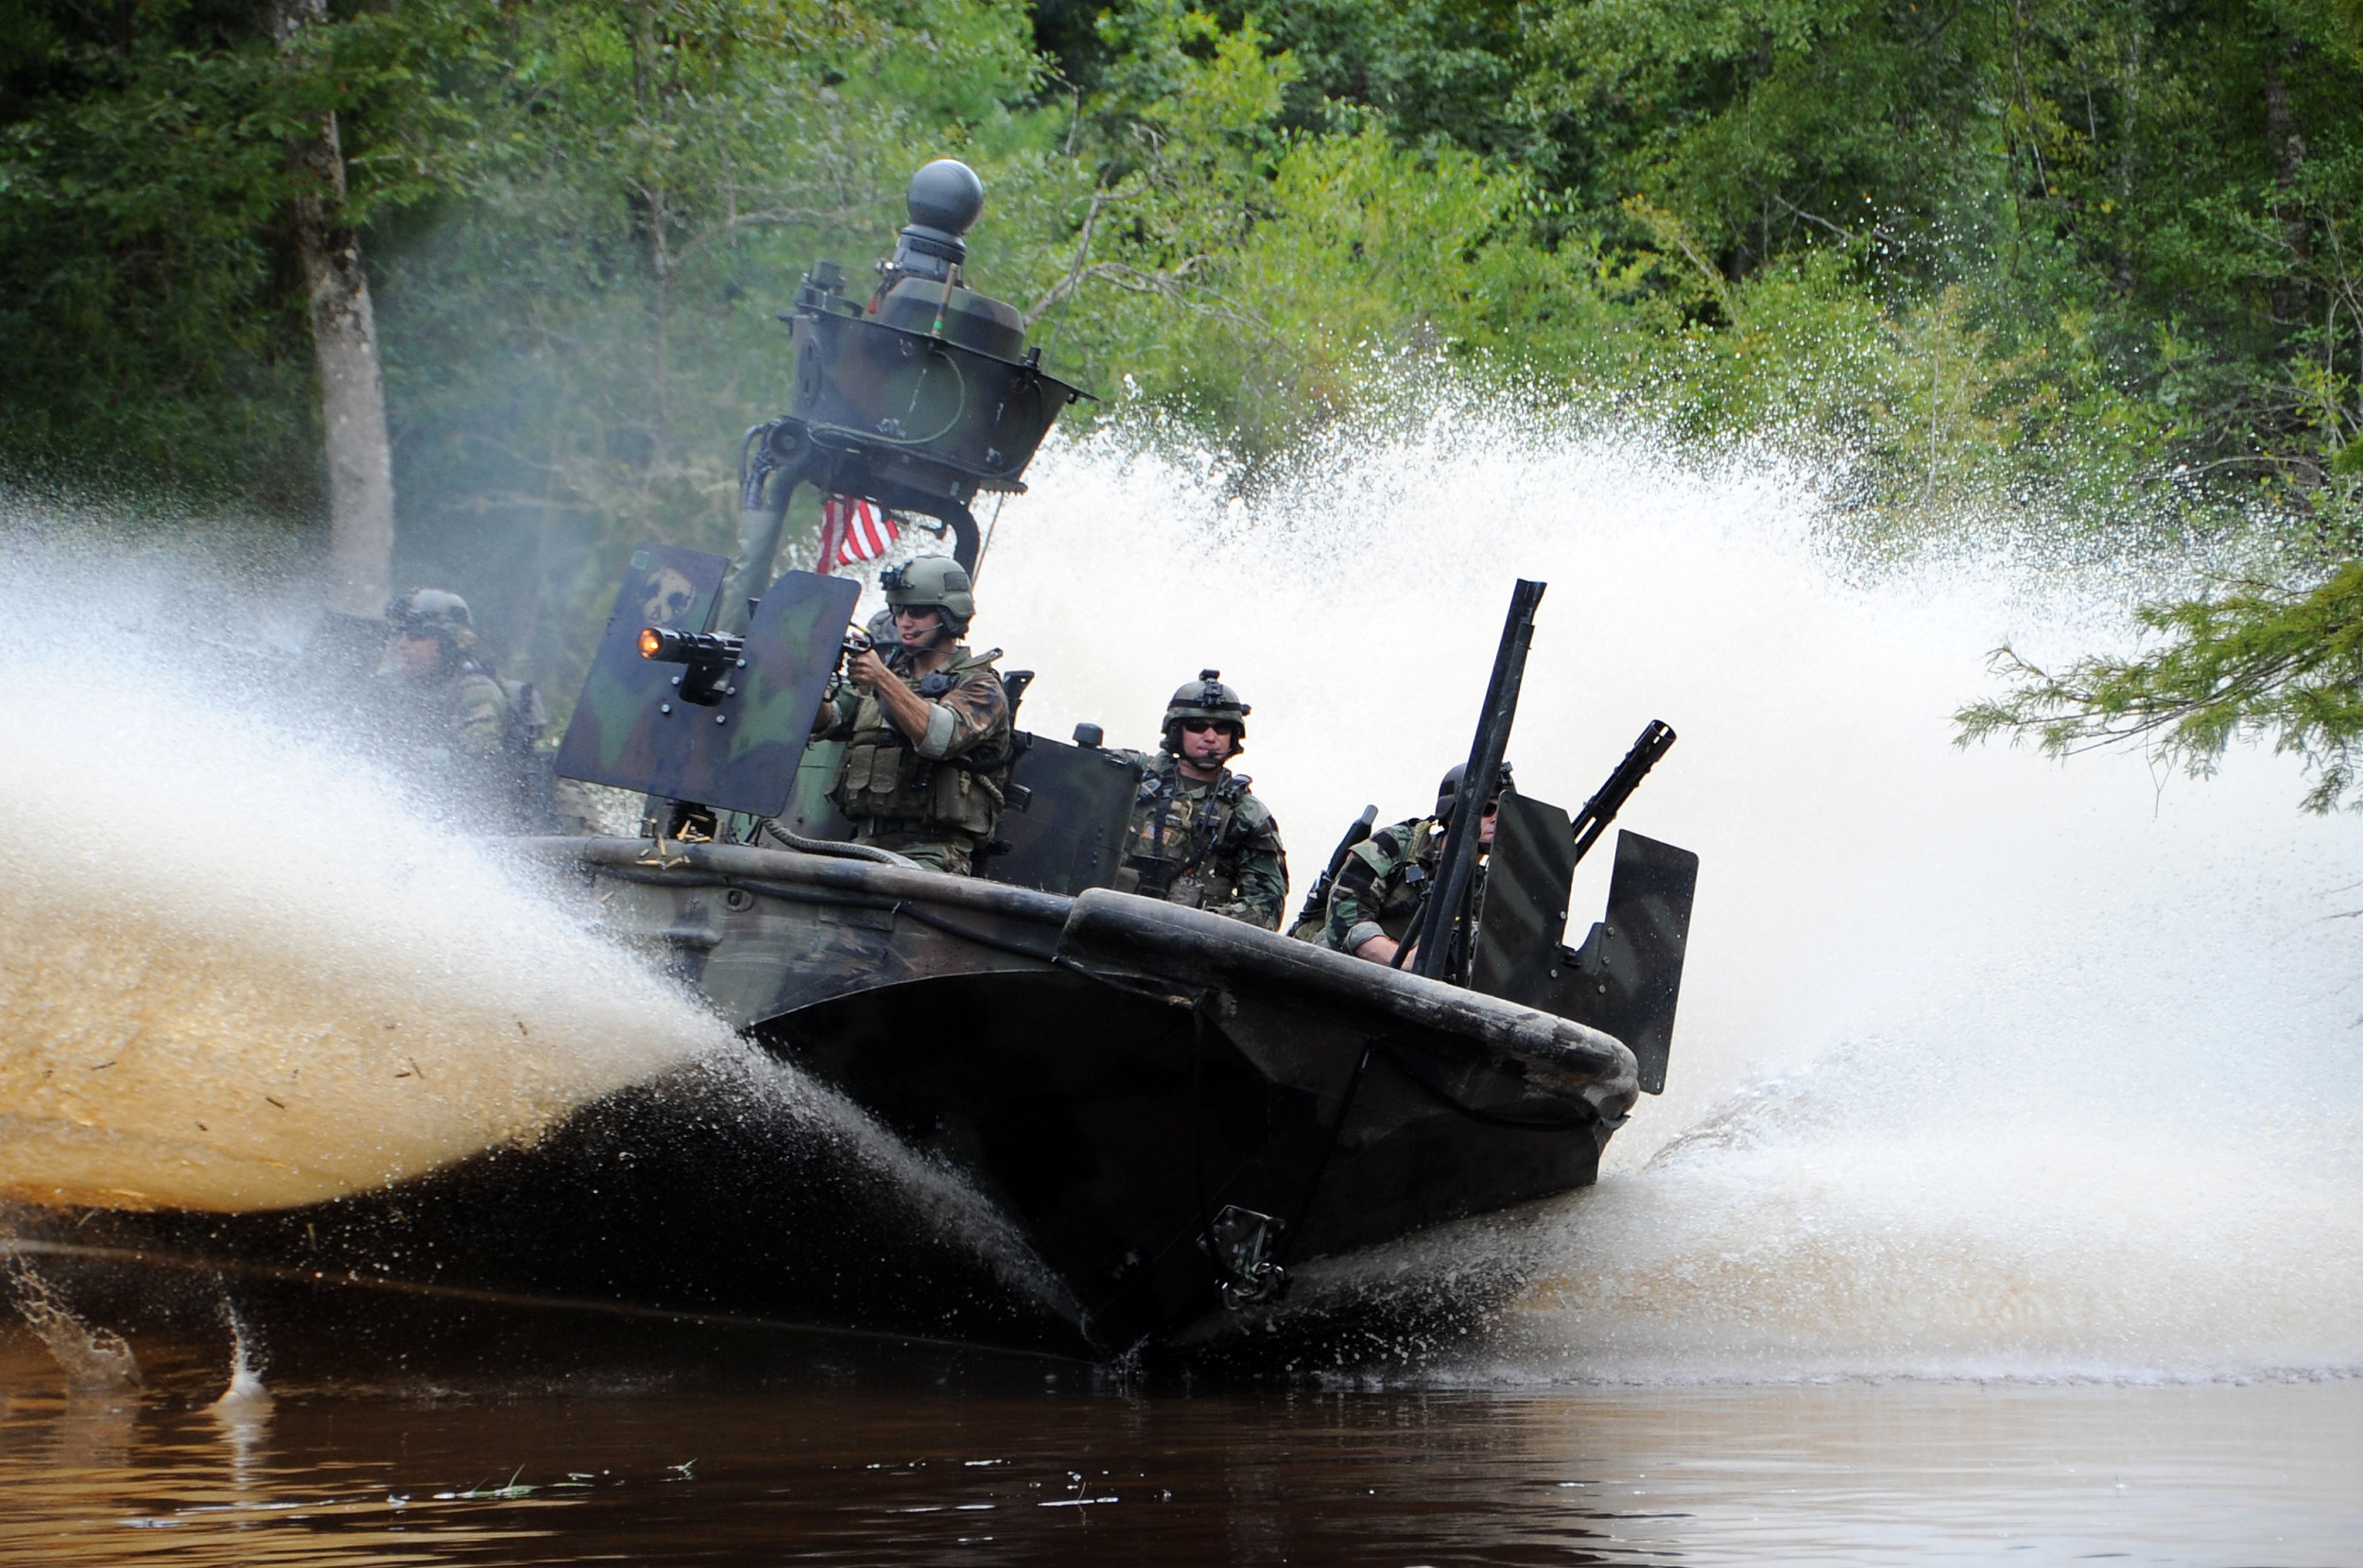 Special warfare combatant team in boat ready for action